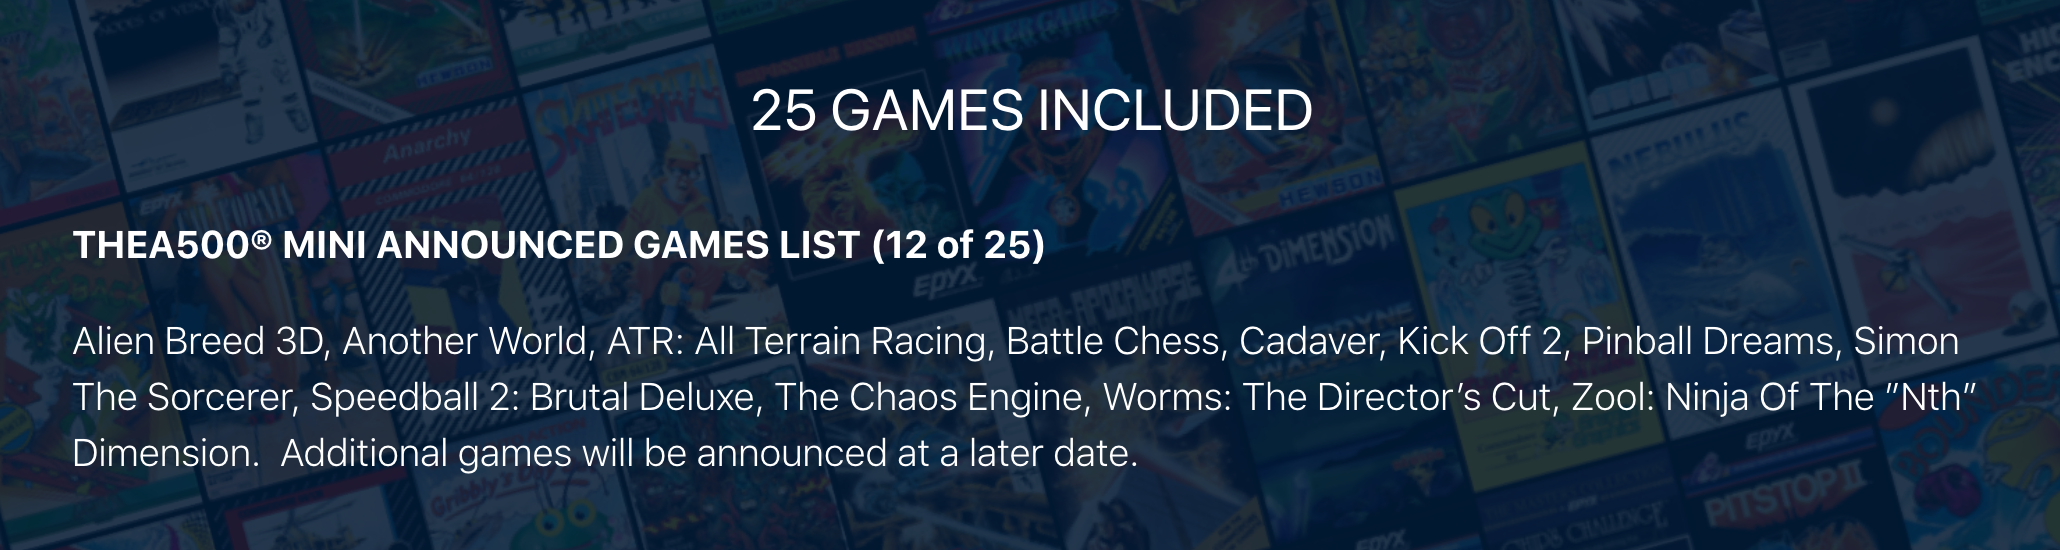 Games are included